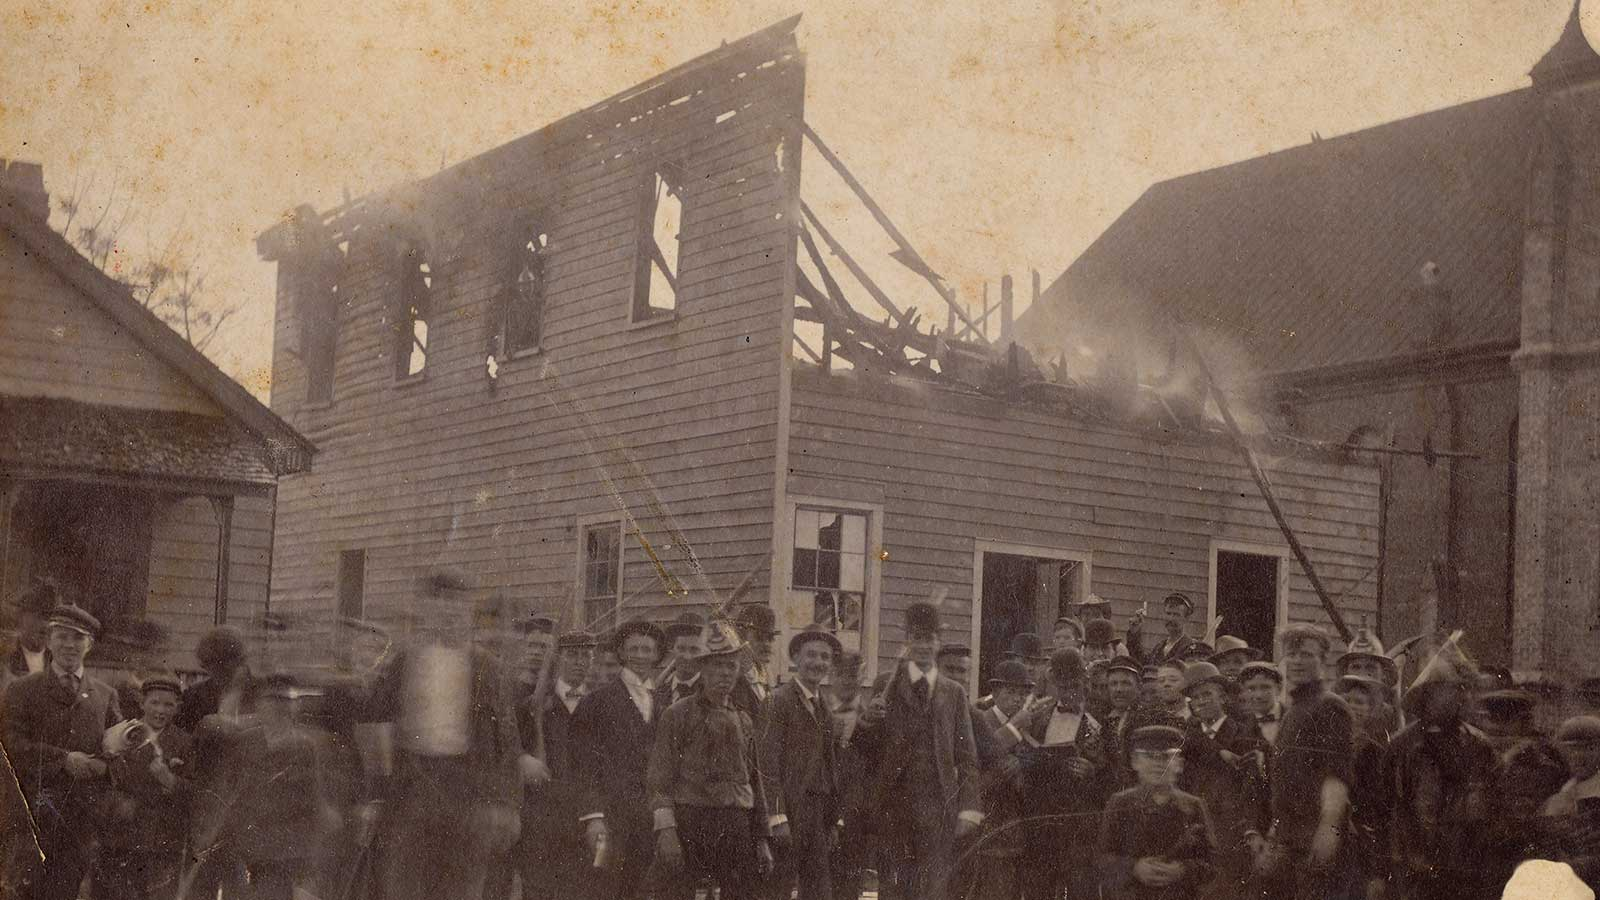 The Daily Record, the only African American newspaper in Wilmington, N.C., was set ablaze as the Wilmington insurrection of 1898 began.